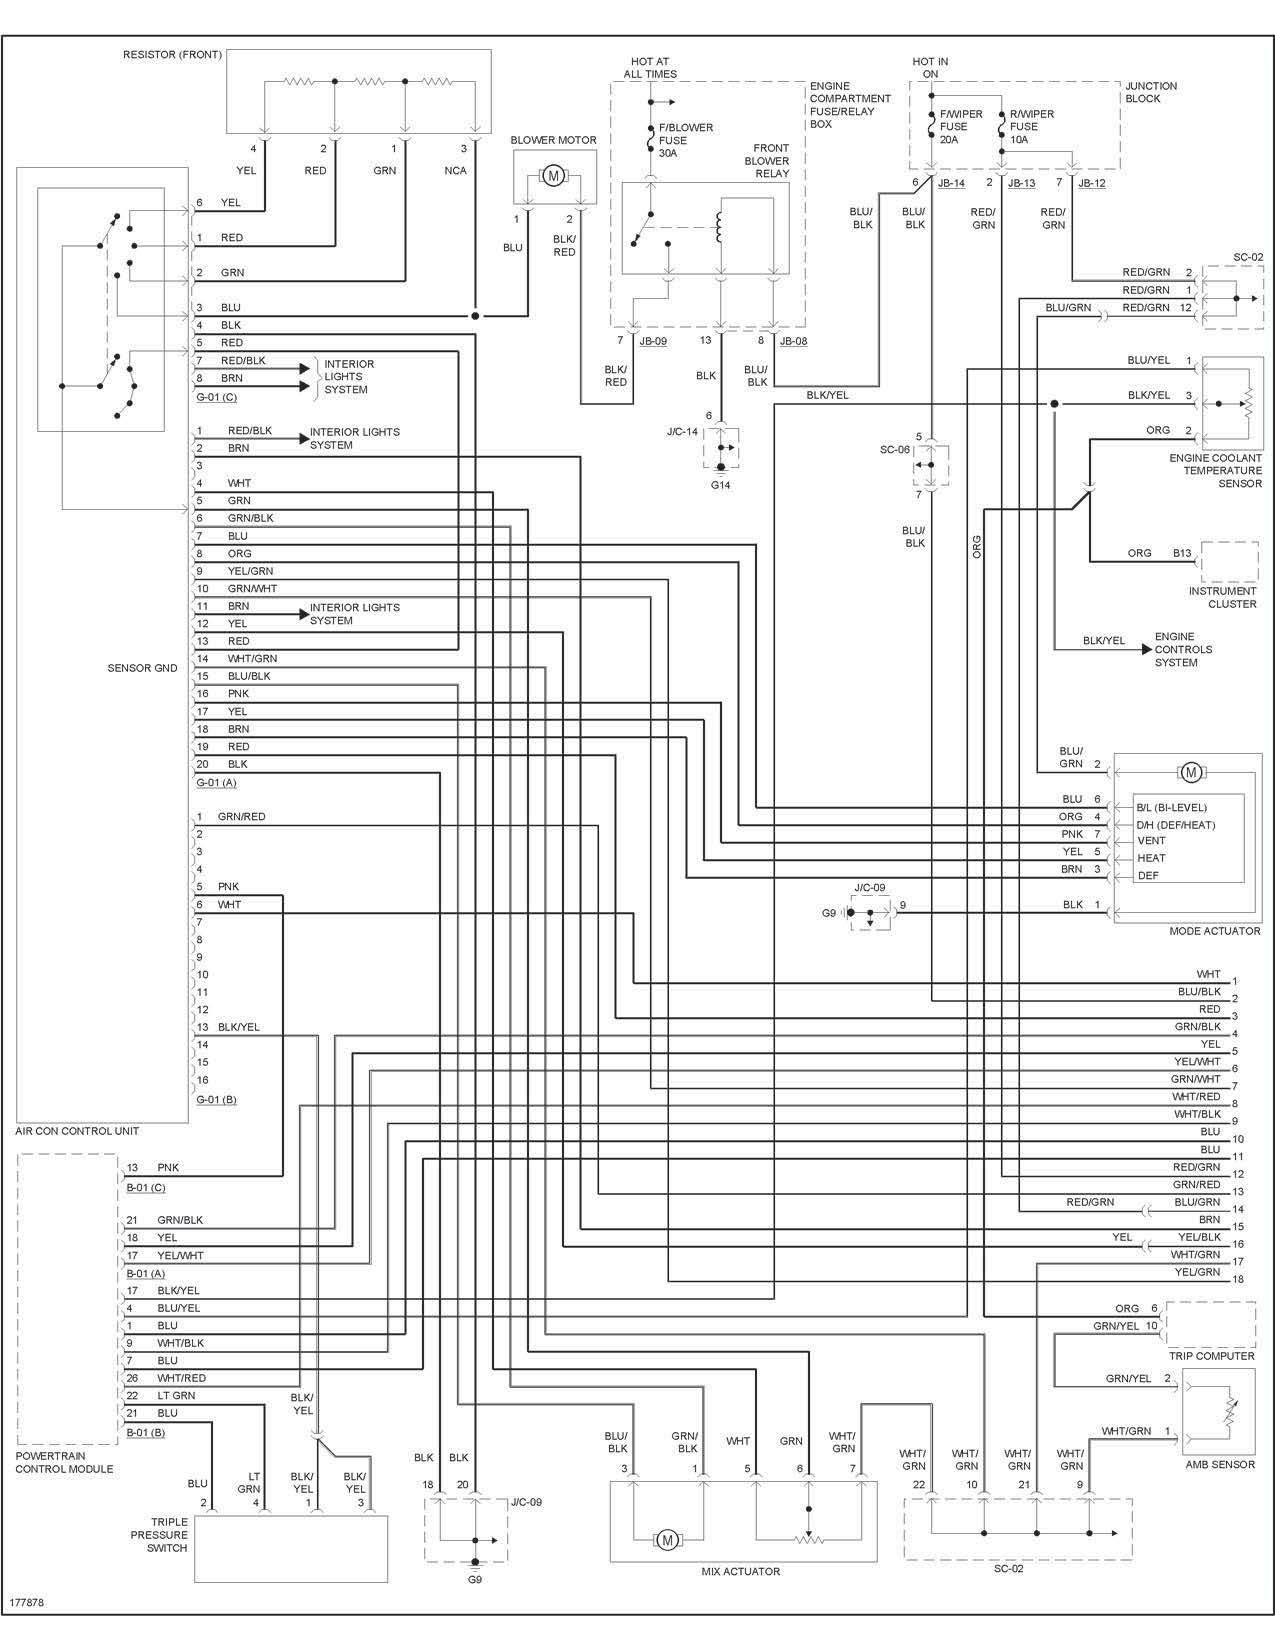 Kia Sedona Wiring Diagram Wiring Diagram for Kia Sedona 2003 User Guide Of Wiring Of Kia Sedona Wiring Diagram 2007 Kia sorento Wiring Diagram 2007 Kia Sedona Radio Wiring